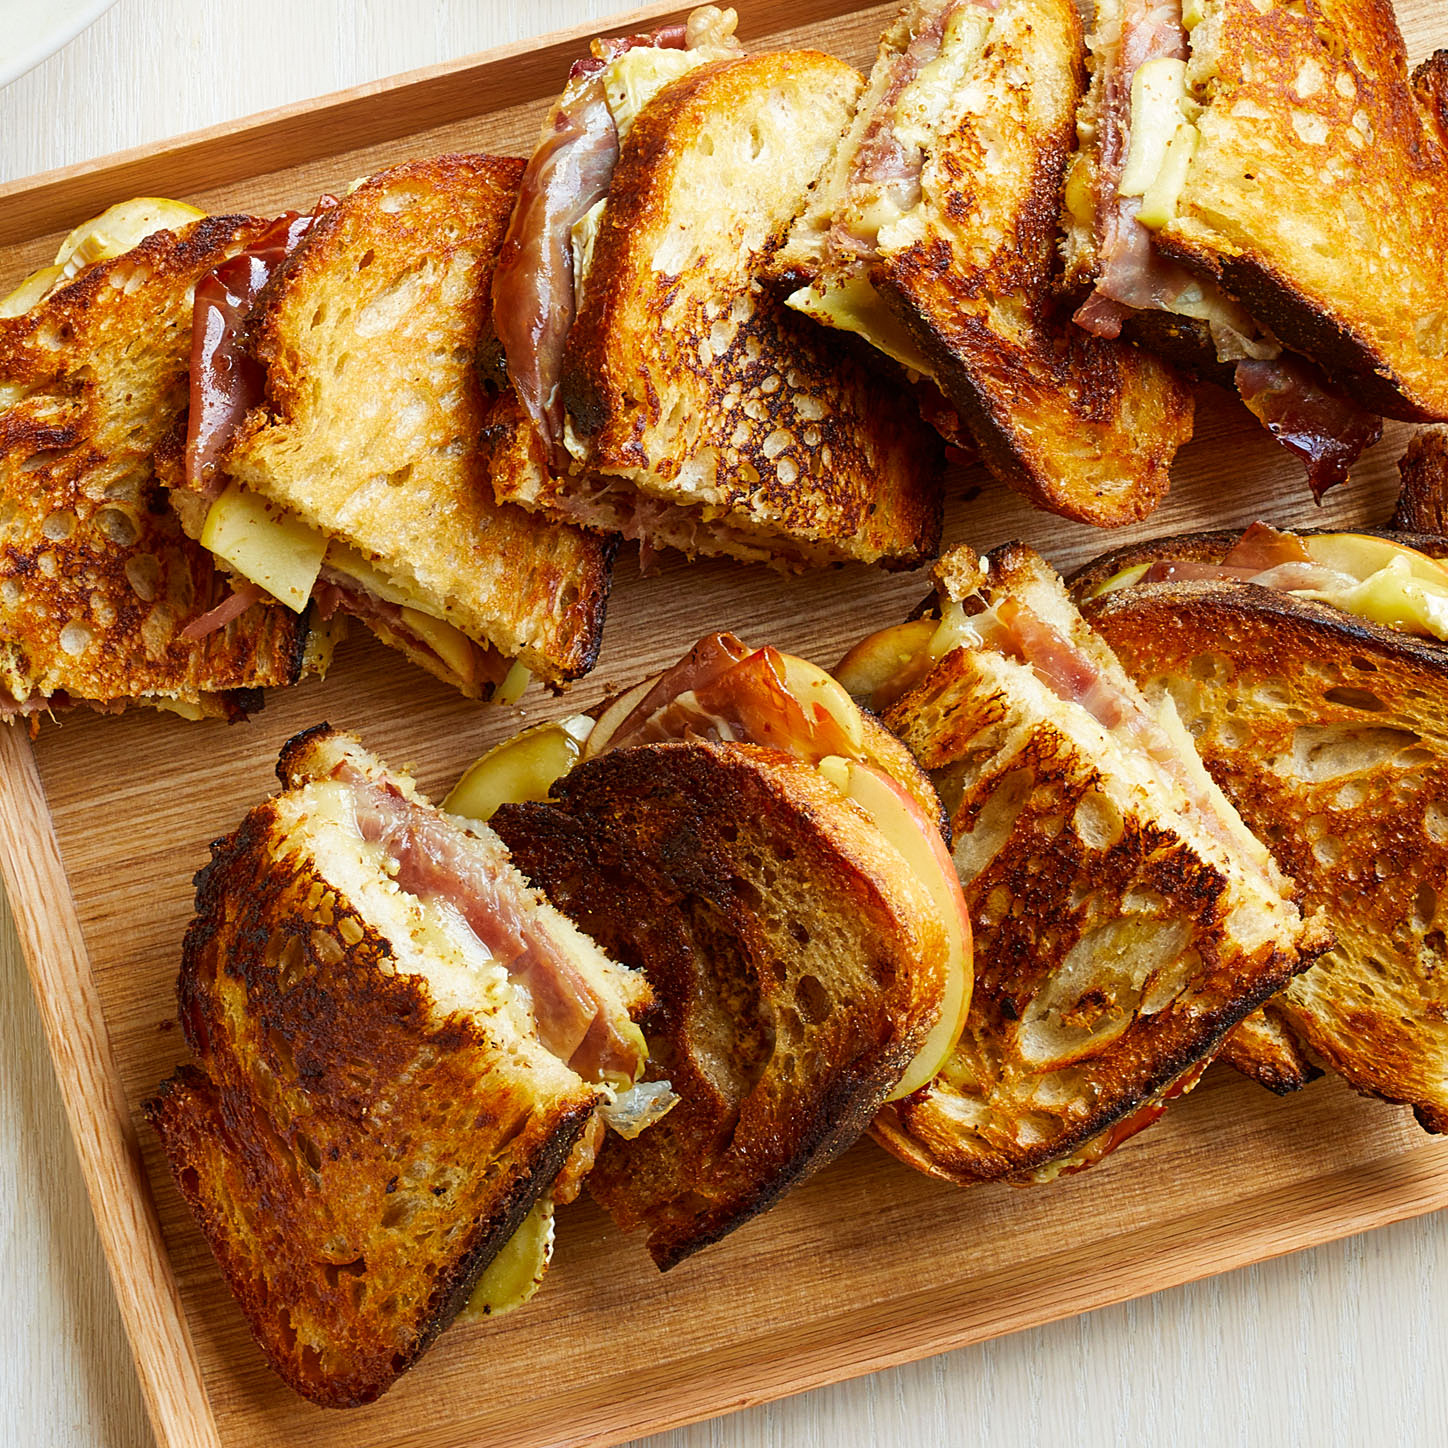 baked brie apple prosciutto sandwiches